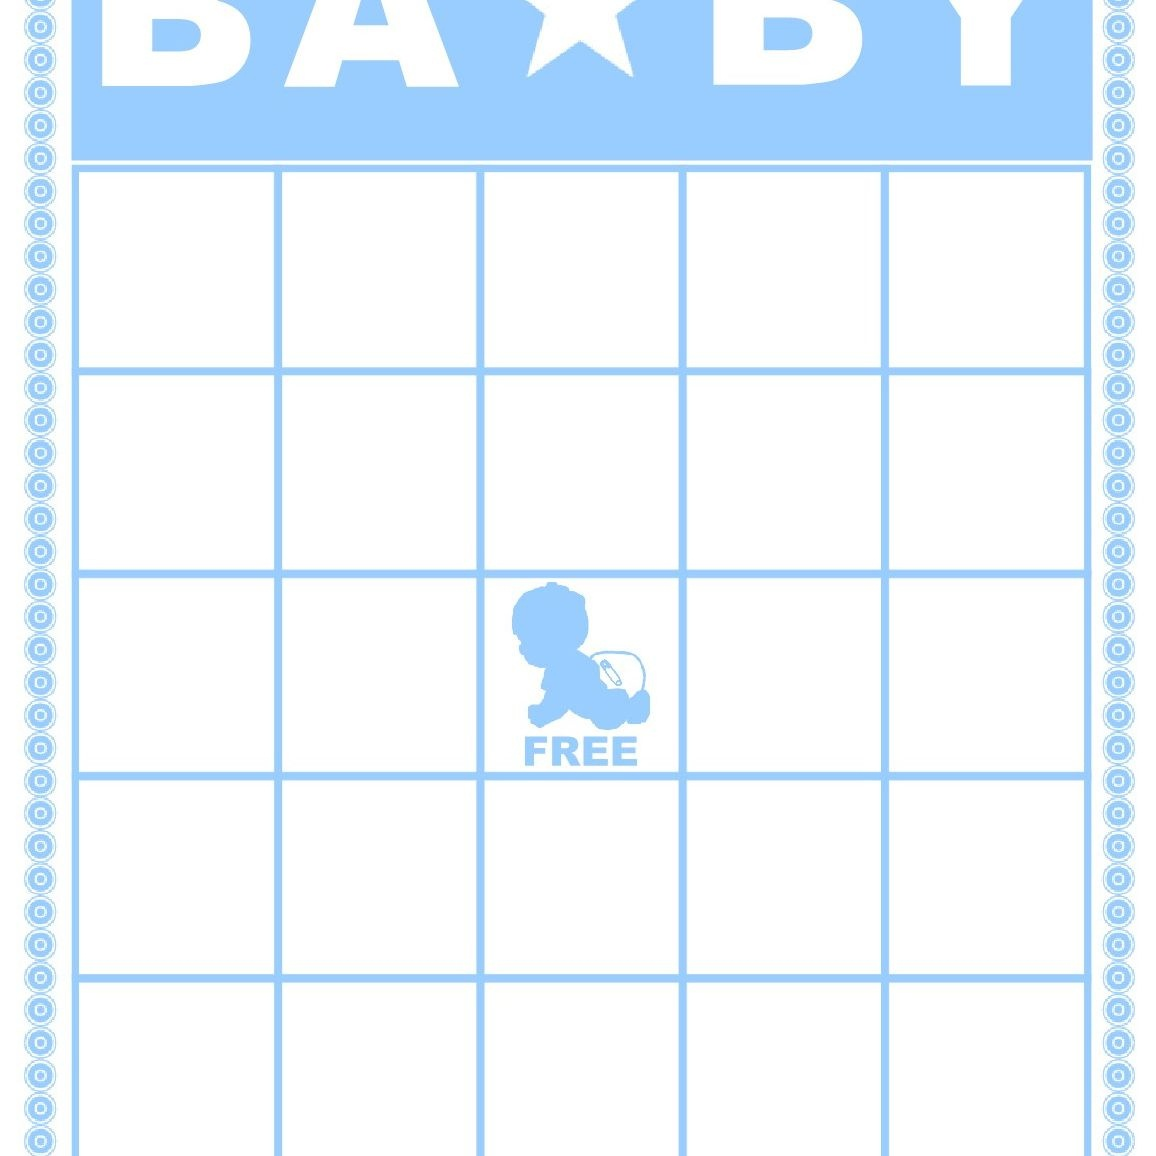 Free Baby Shower Bingo Cards Your Guests Will Love - Free Printable Baby Shower Bingo Cards